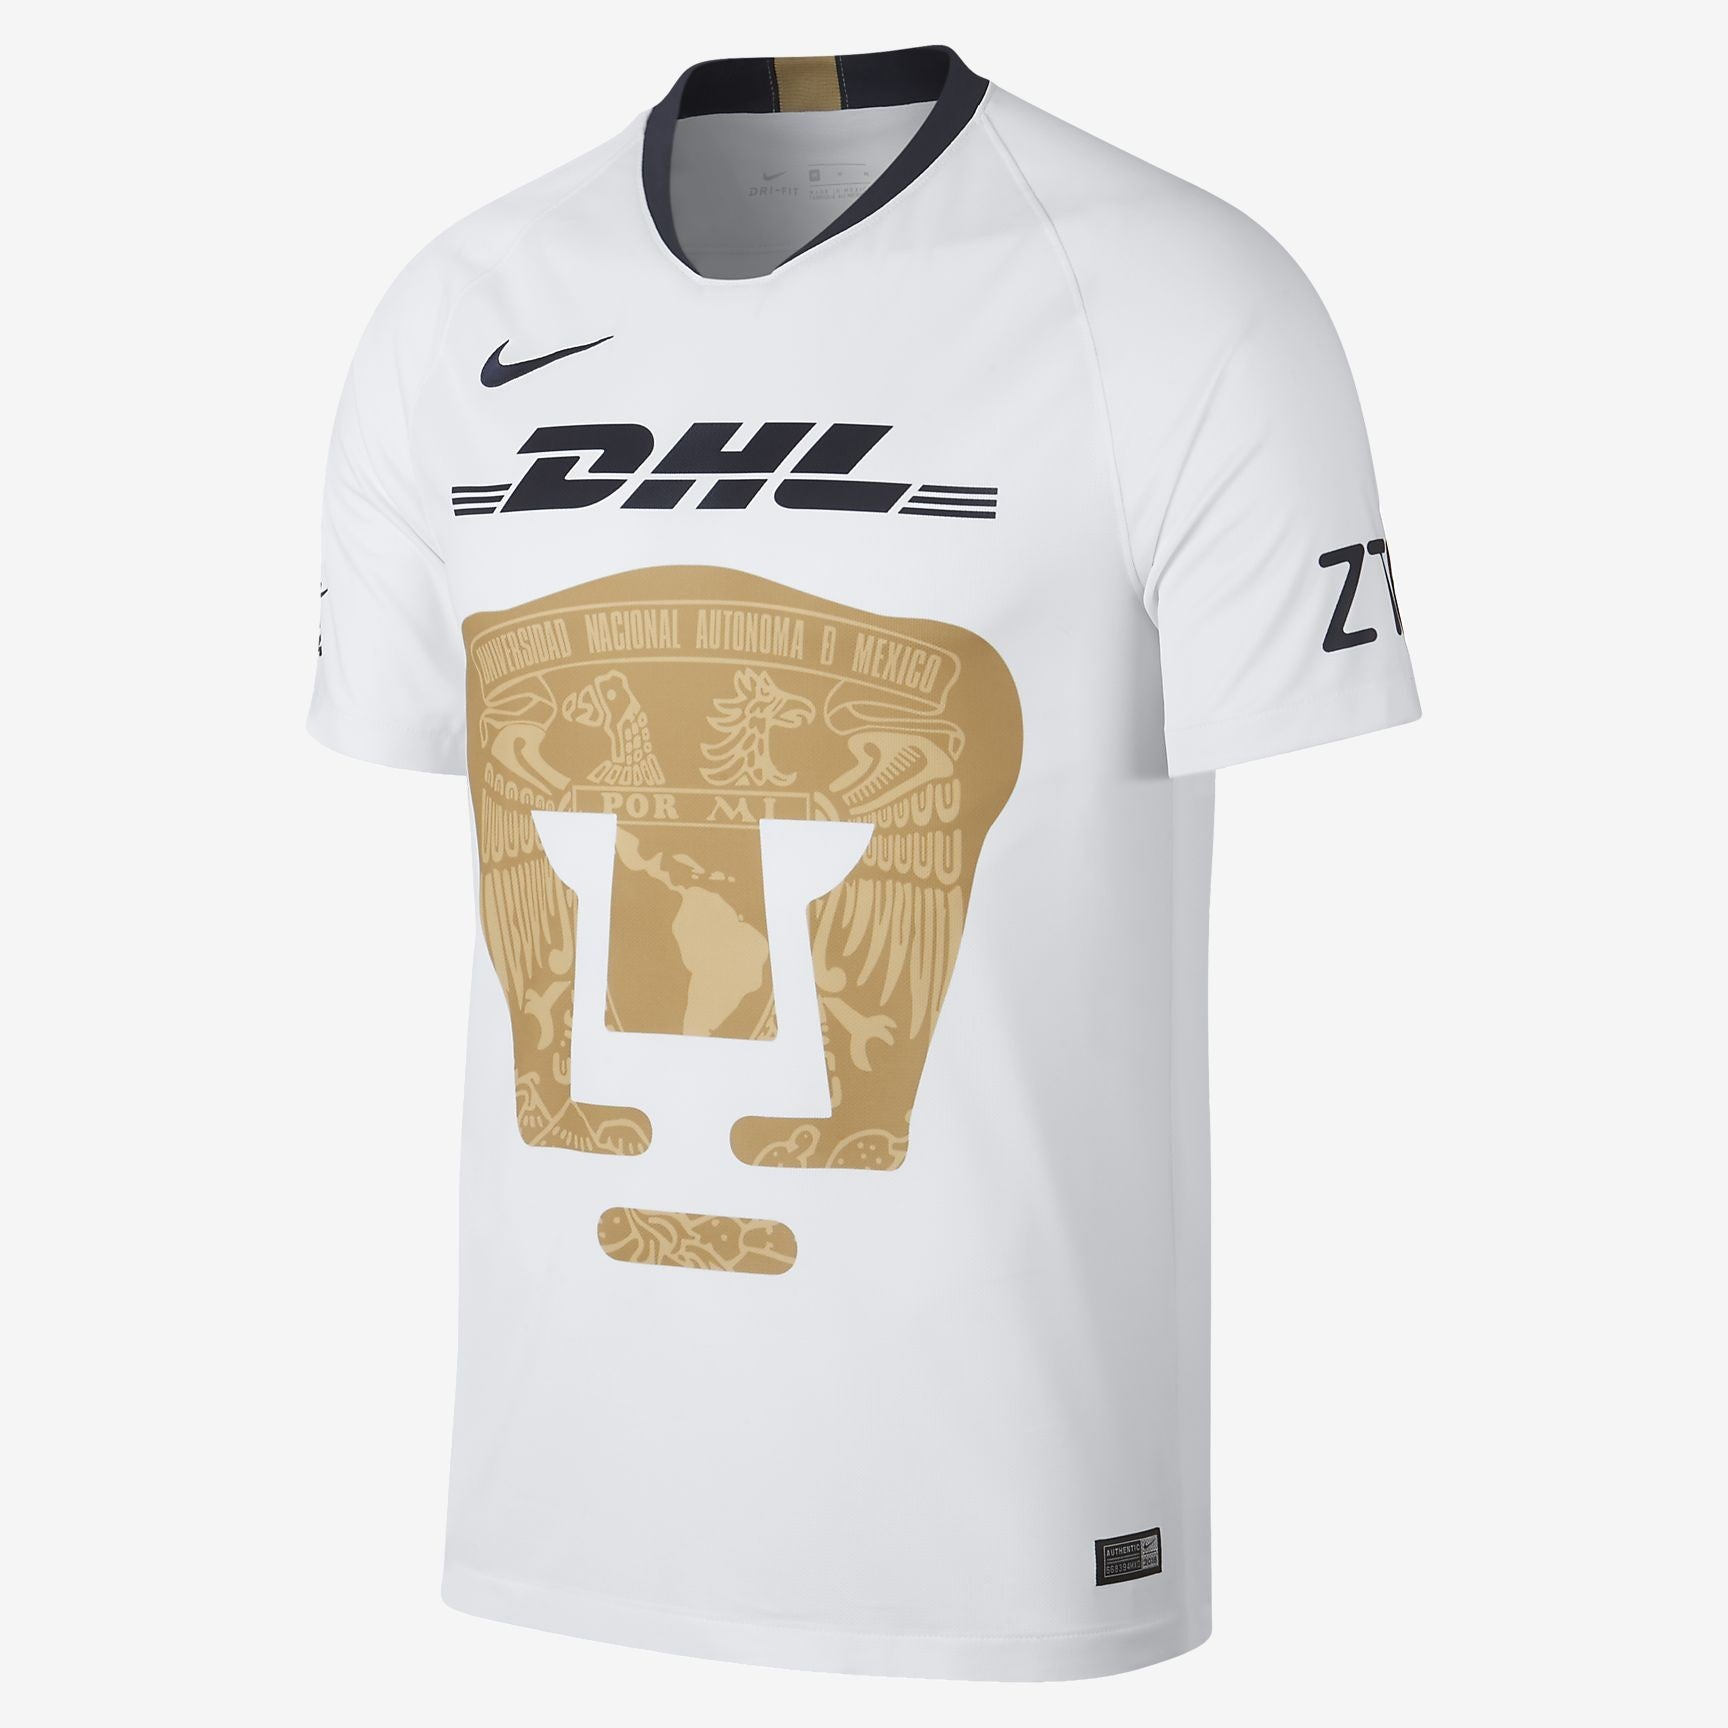 Men's U.N.A.M. Pumas 18/19 Home Jersey - White/Truly Gold